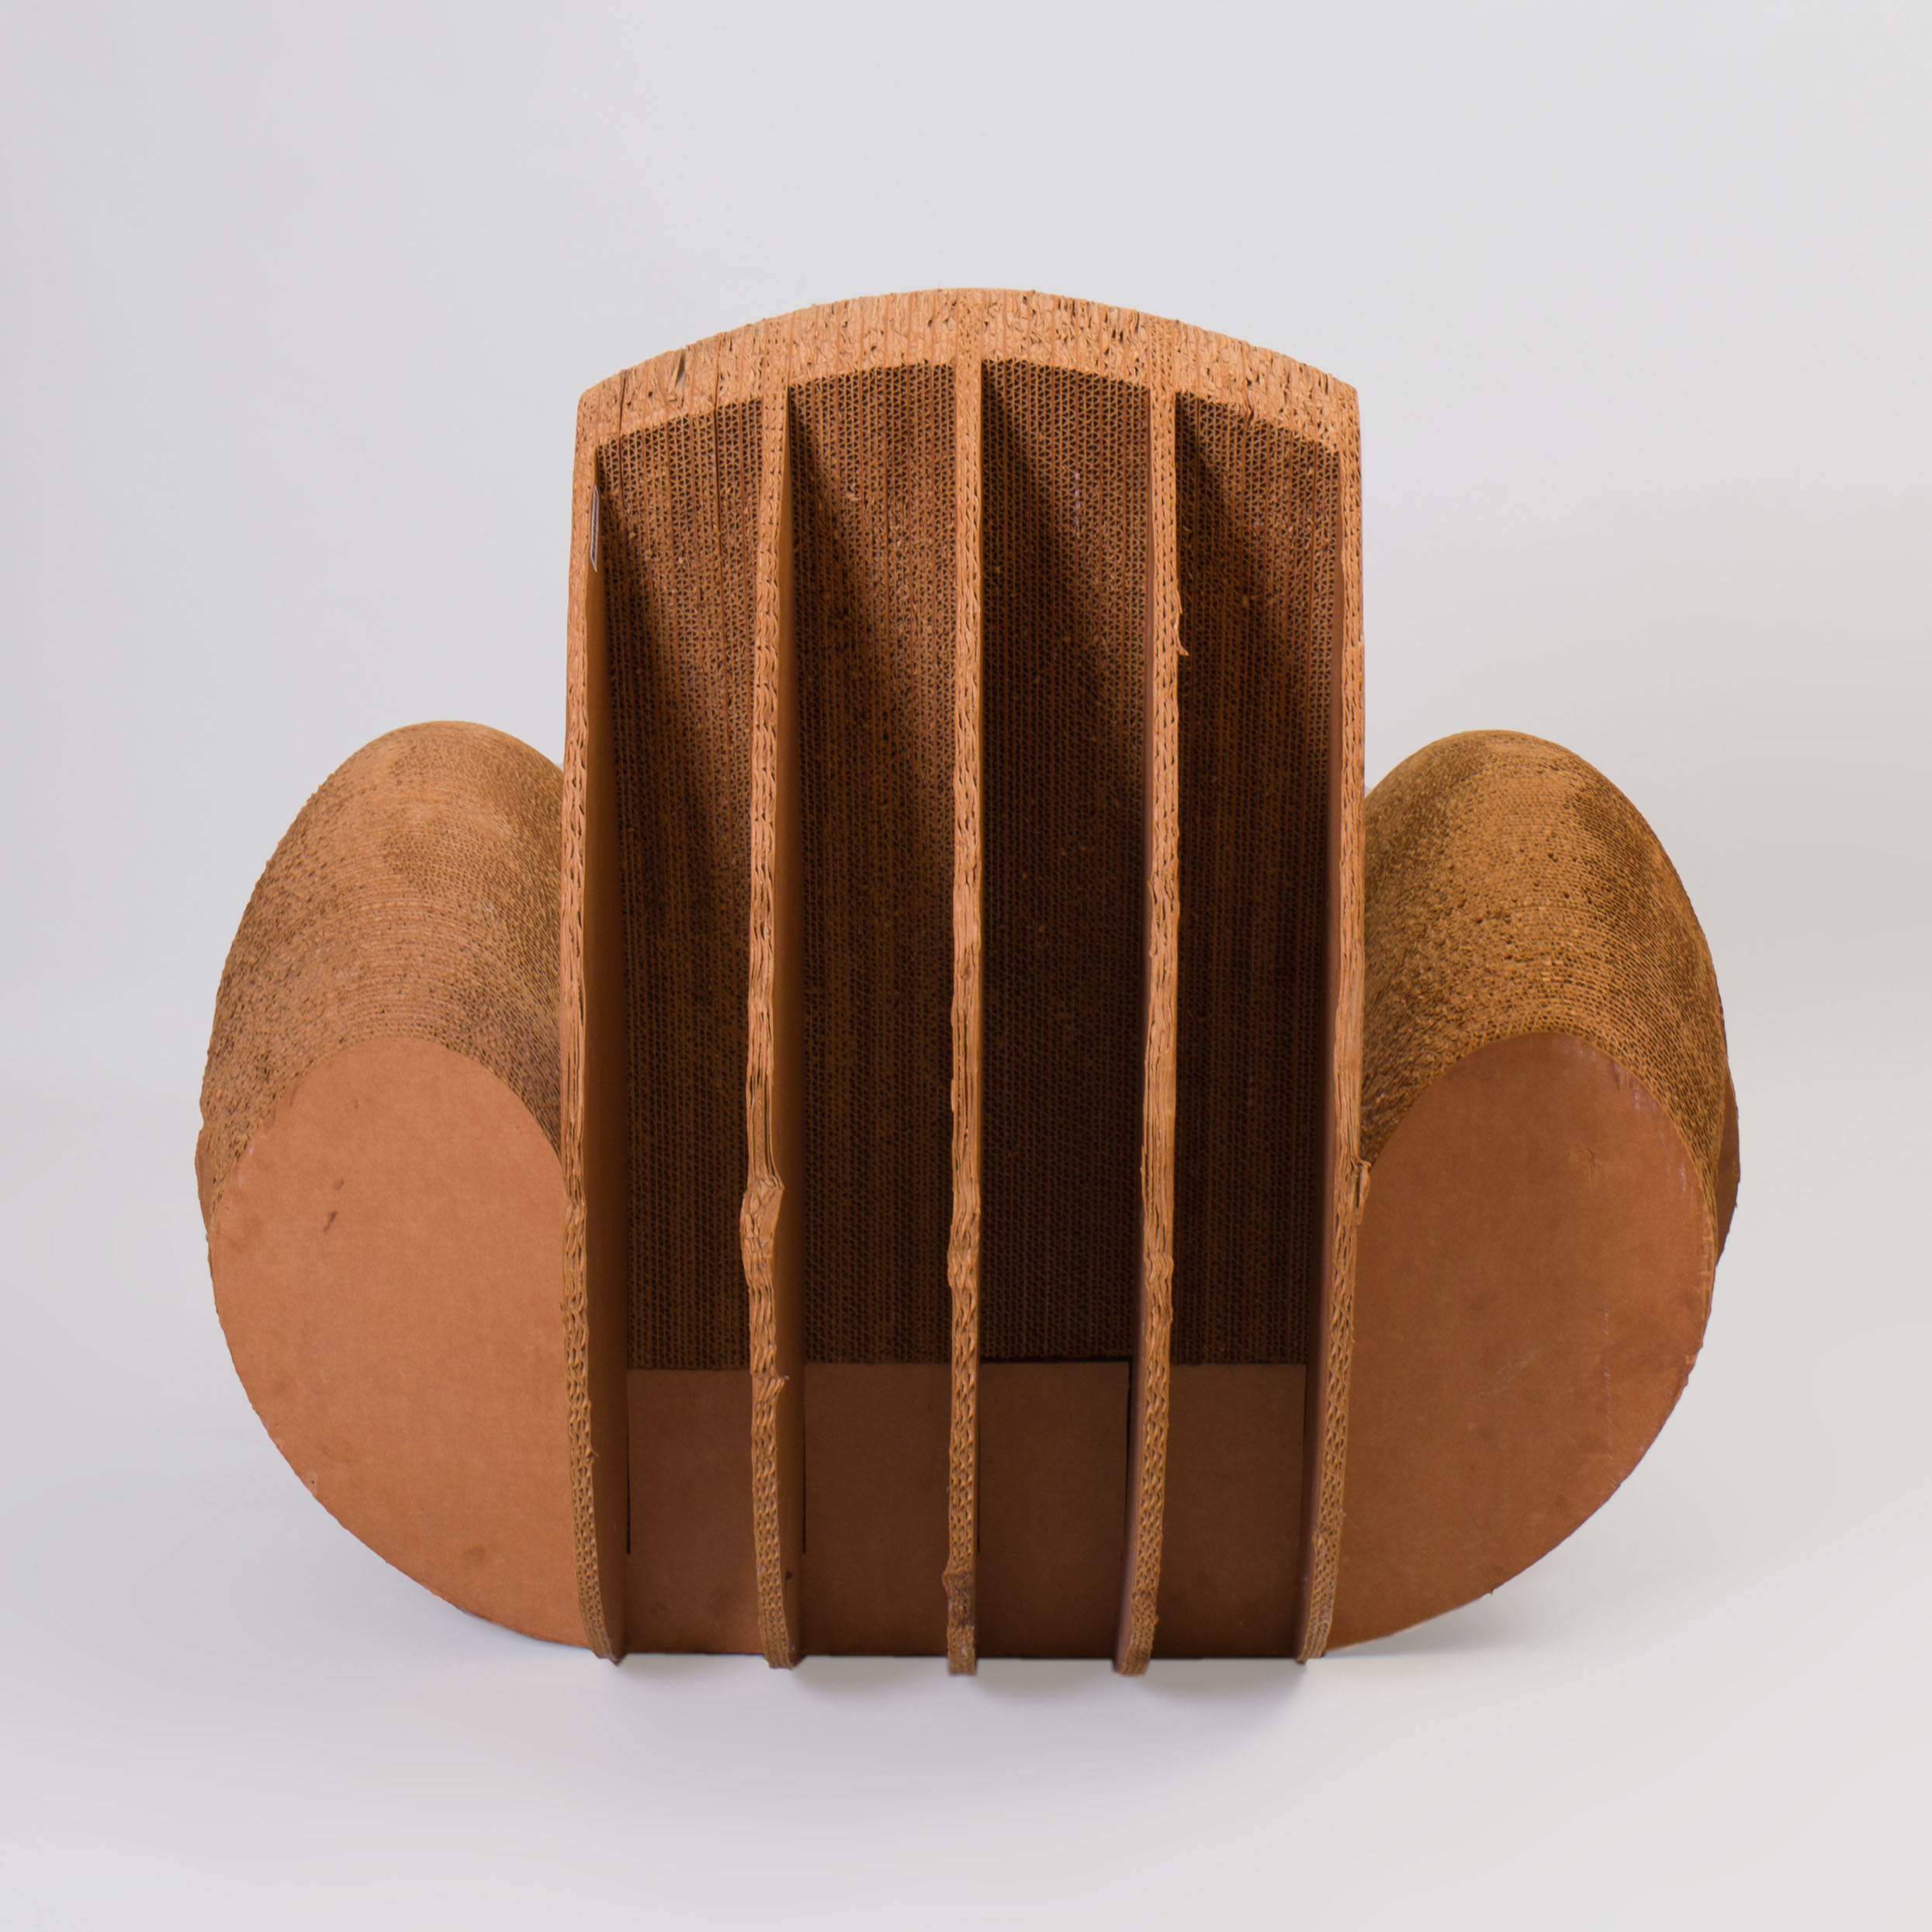 frank gehry cardboard chairs cohesion gaming chair with audio in the manner of auction house website